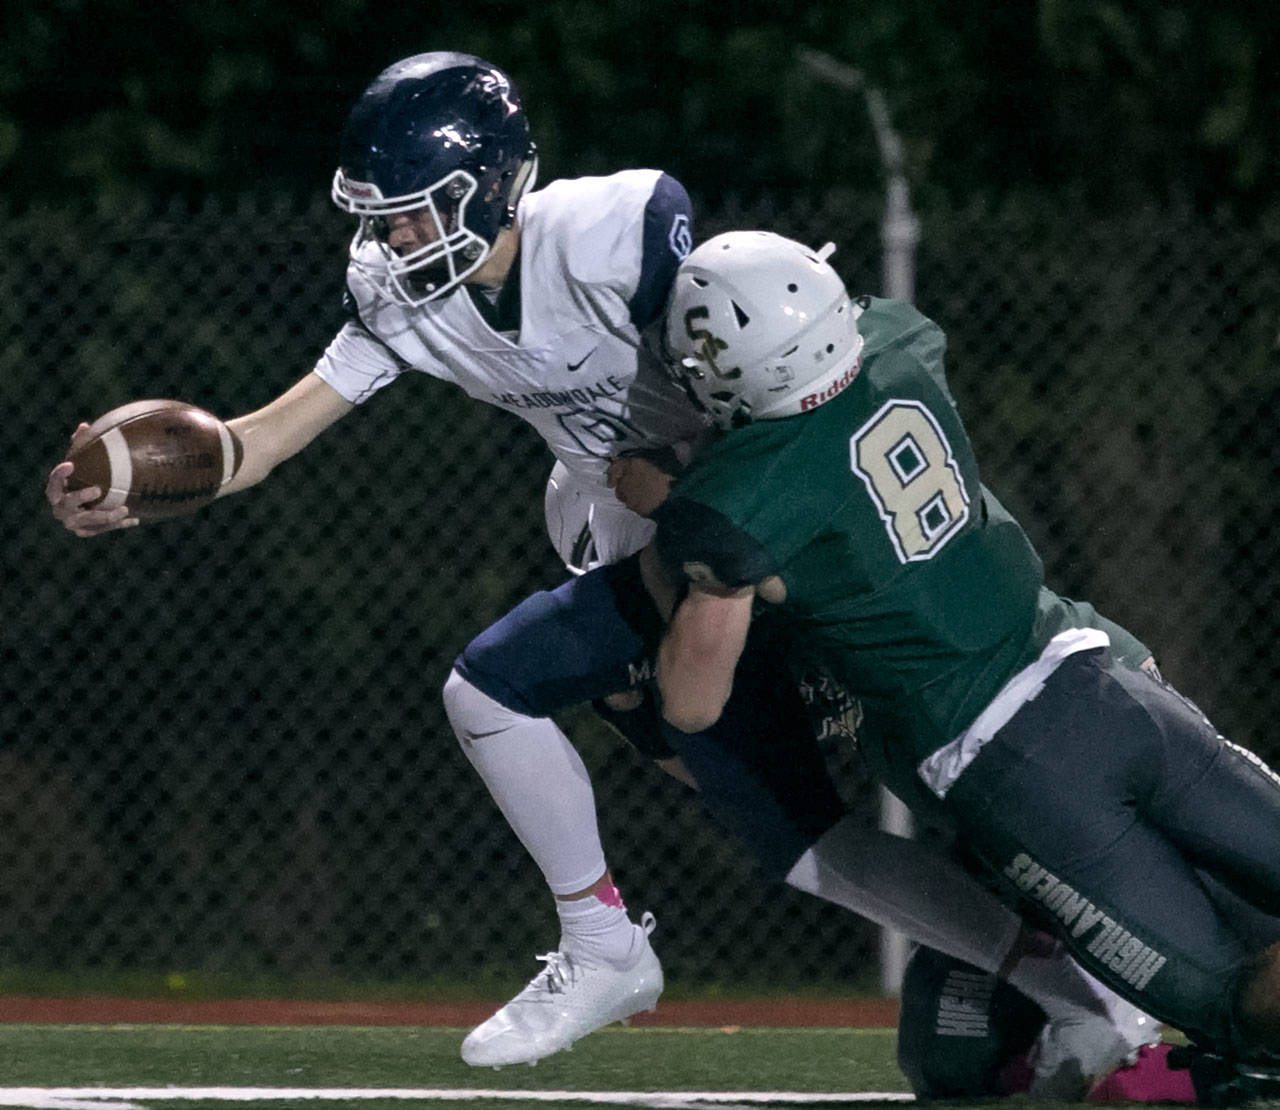 Quarterback Hunter Moen (left) and his Meadowdale teammates take on Edmonds School District rival Edmonds-Woodway in a key Wesco 3A South contest on Sept. 27. (Kevin Clark / The Herald)